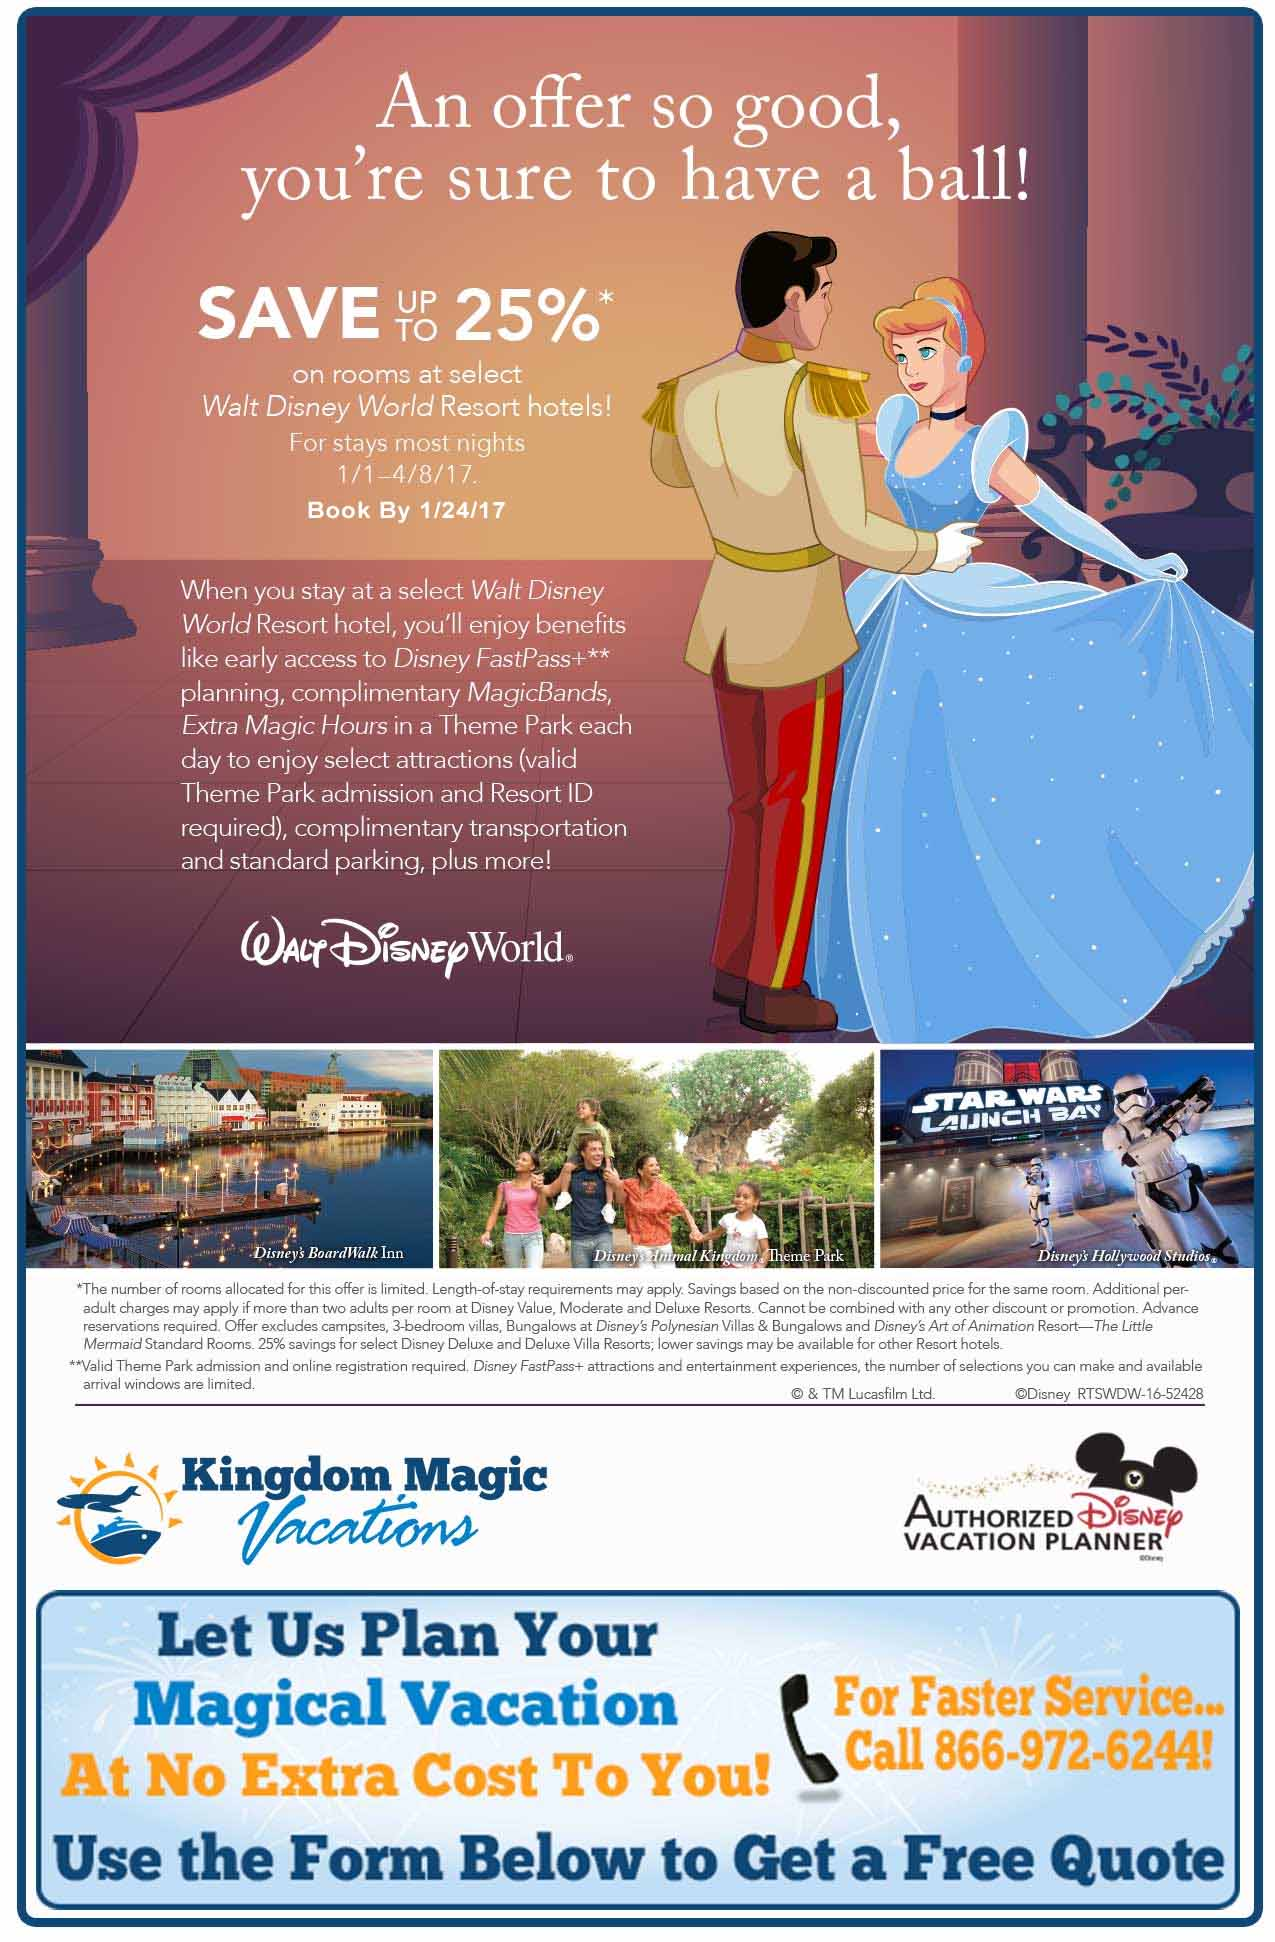 wdw-romm-only-revised